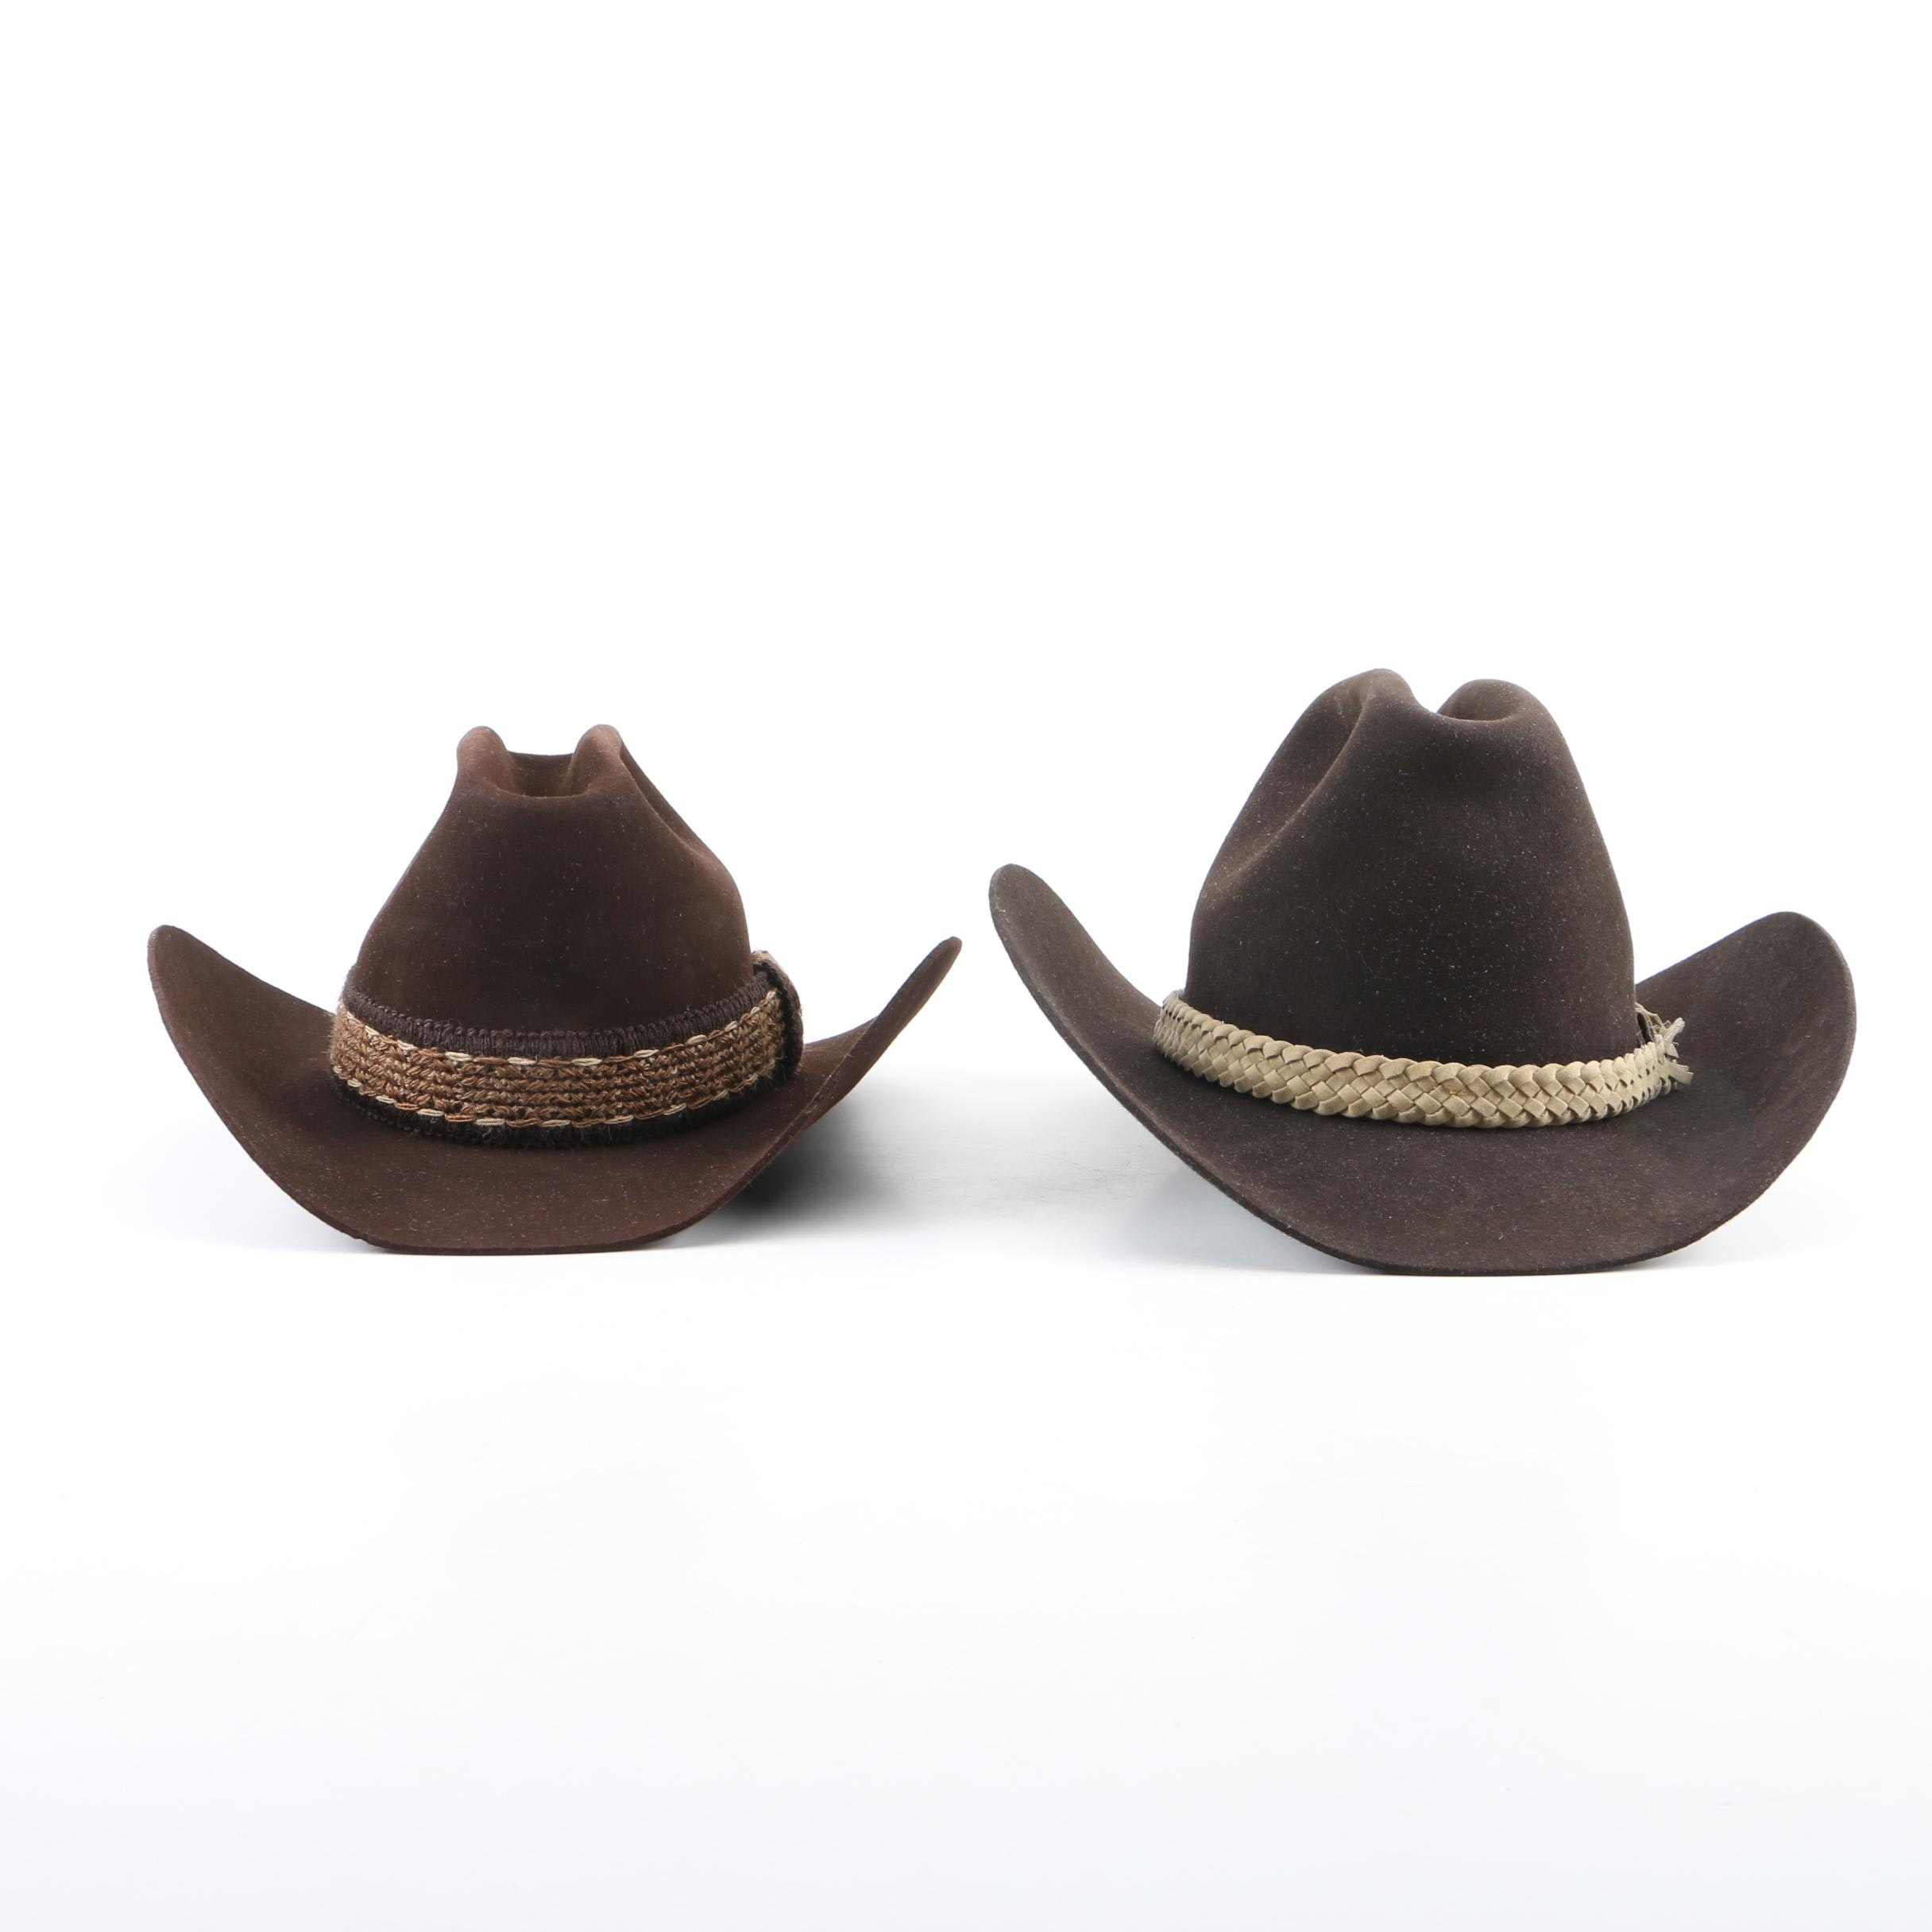 Men's Resistol Lariat Cordova and Bailey New West Cowboy Hats